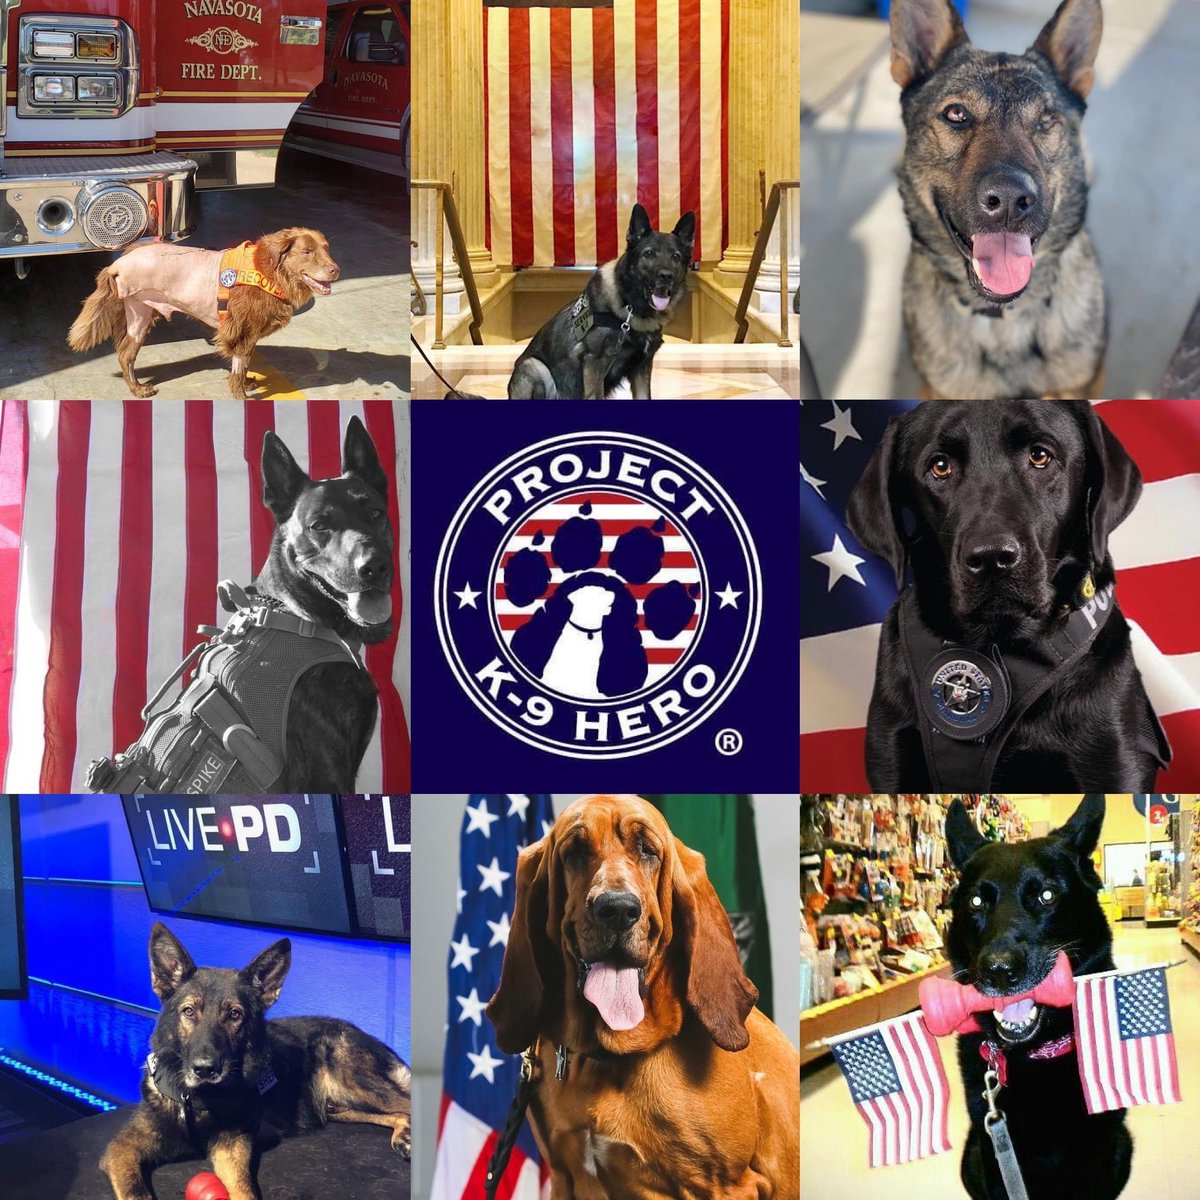 On behalf of the entire pack at Project K-9 Hero, Happy Independence Day America 🇺🇸! PROJECTK9HERO.ORG #4thofJuly #4thofJuly2020 #independenceday #freedom #america #usa #JJK9